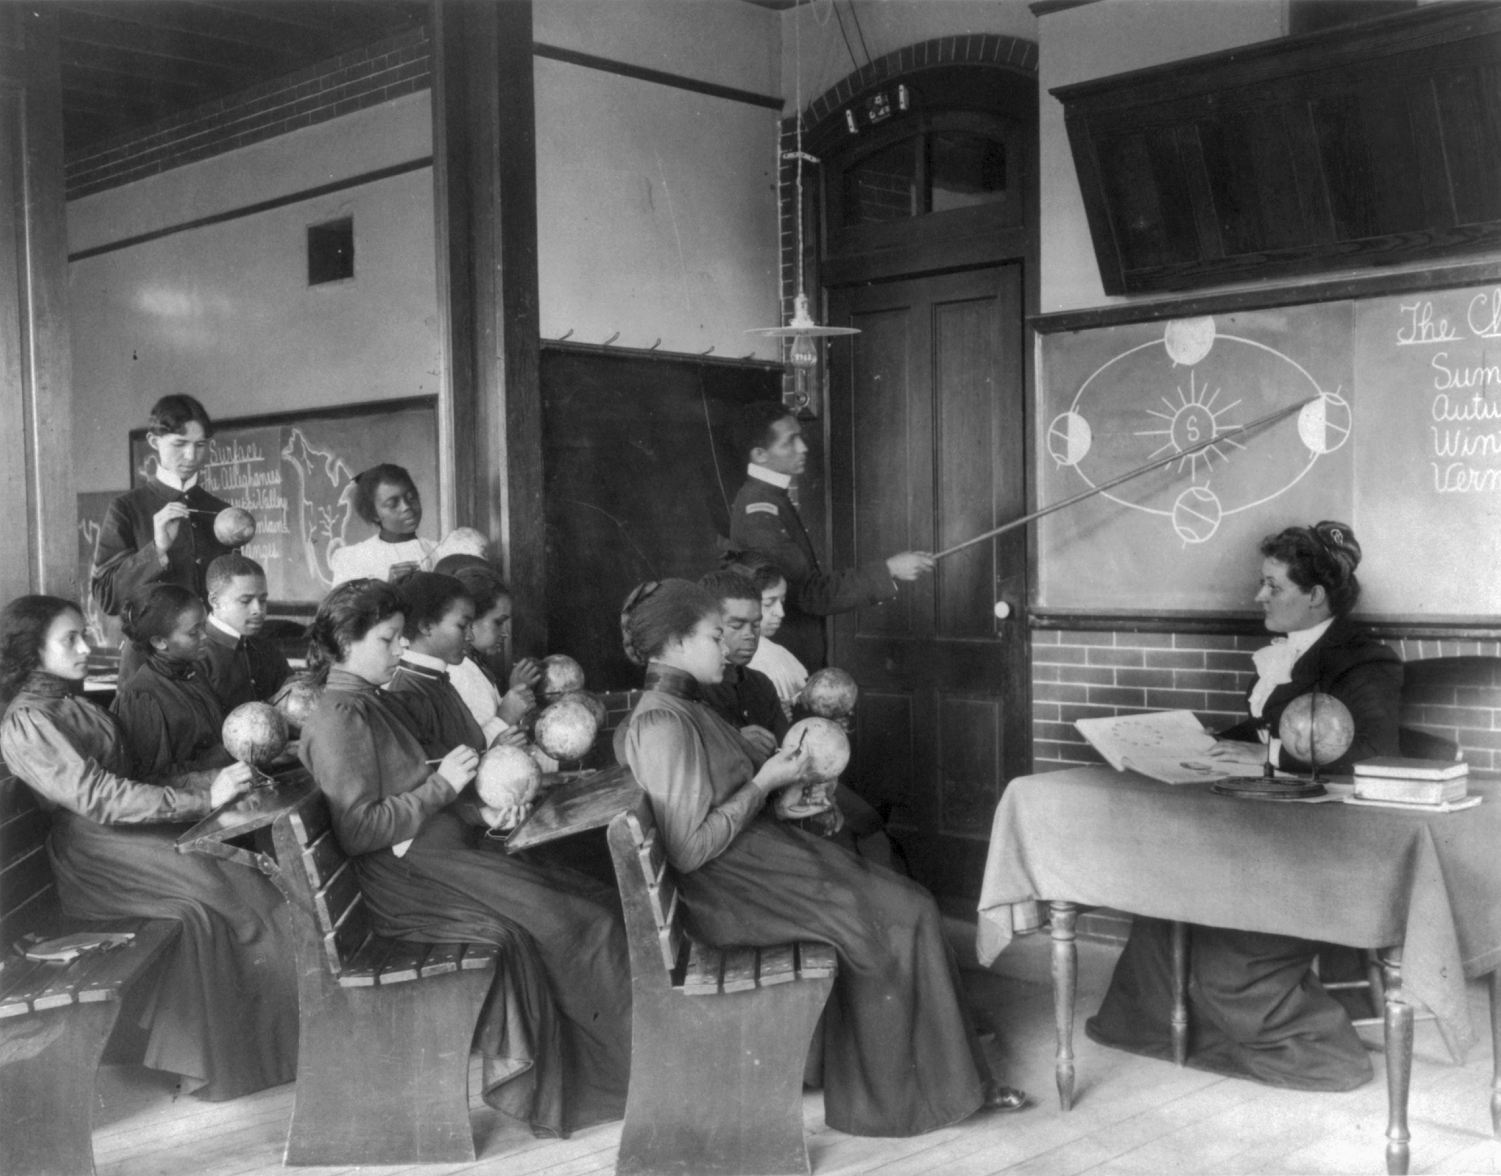 A class in mathematical geography studying earth's rotation around the sun, Hampton Institute, Hampton, Virginia, ca 1899. I love that students have their hands on more than maps. Image courtesy Frances Benjamin Johnston Collection via Wikimedia Commons.